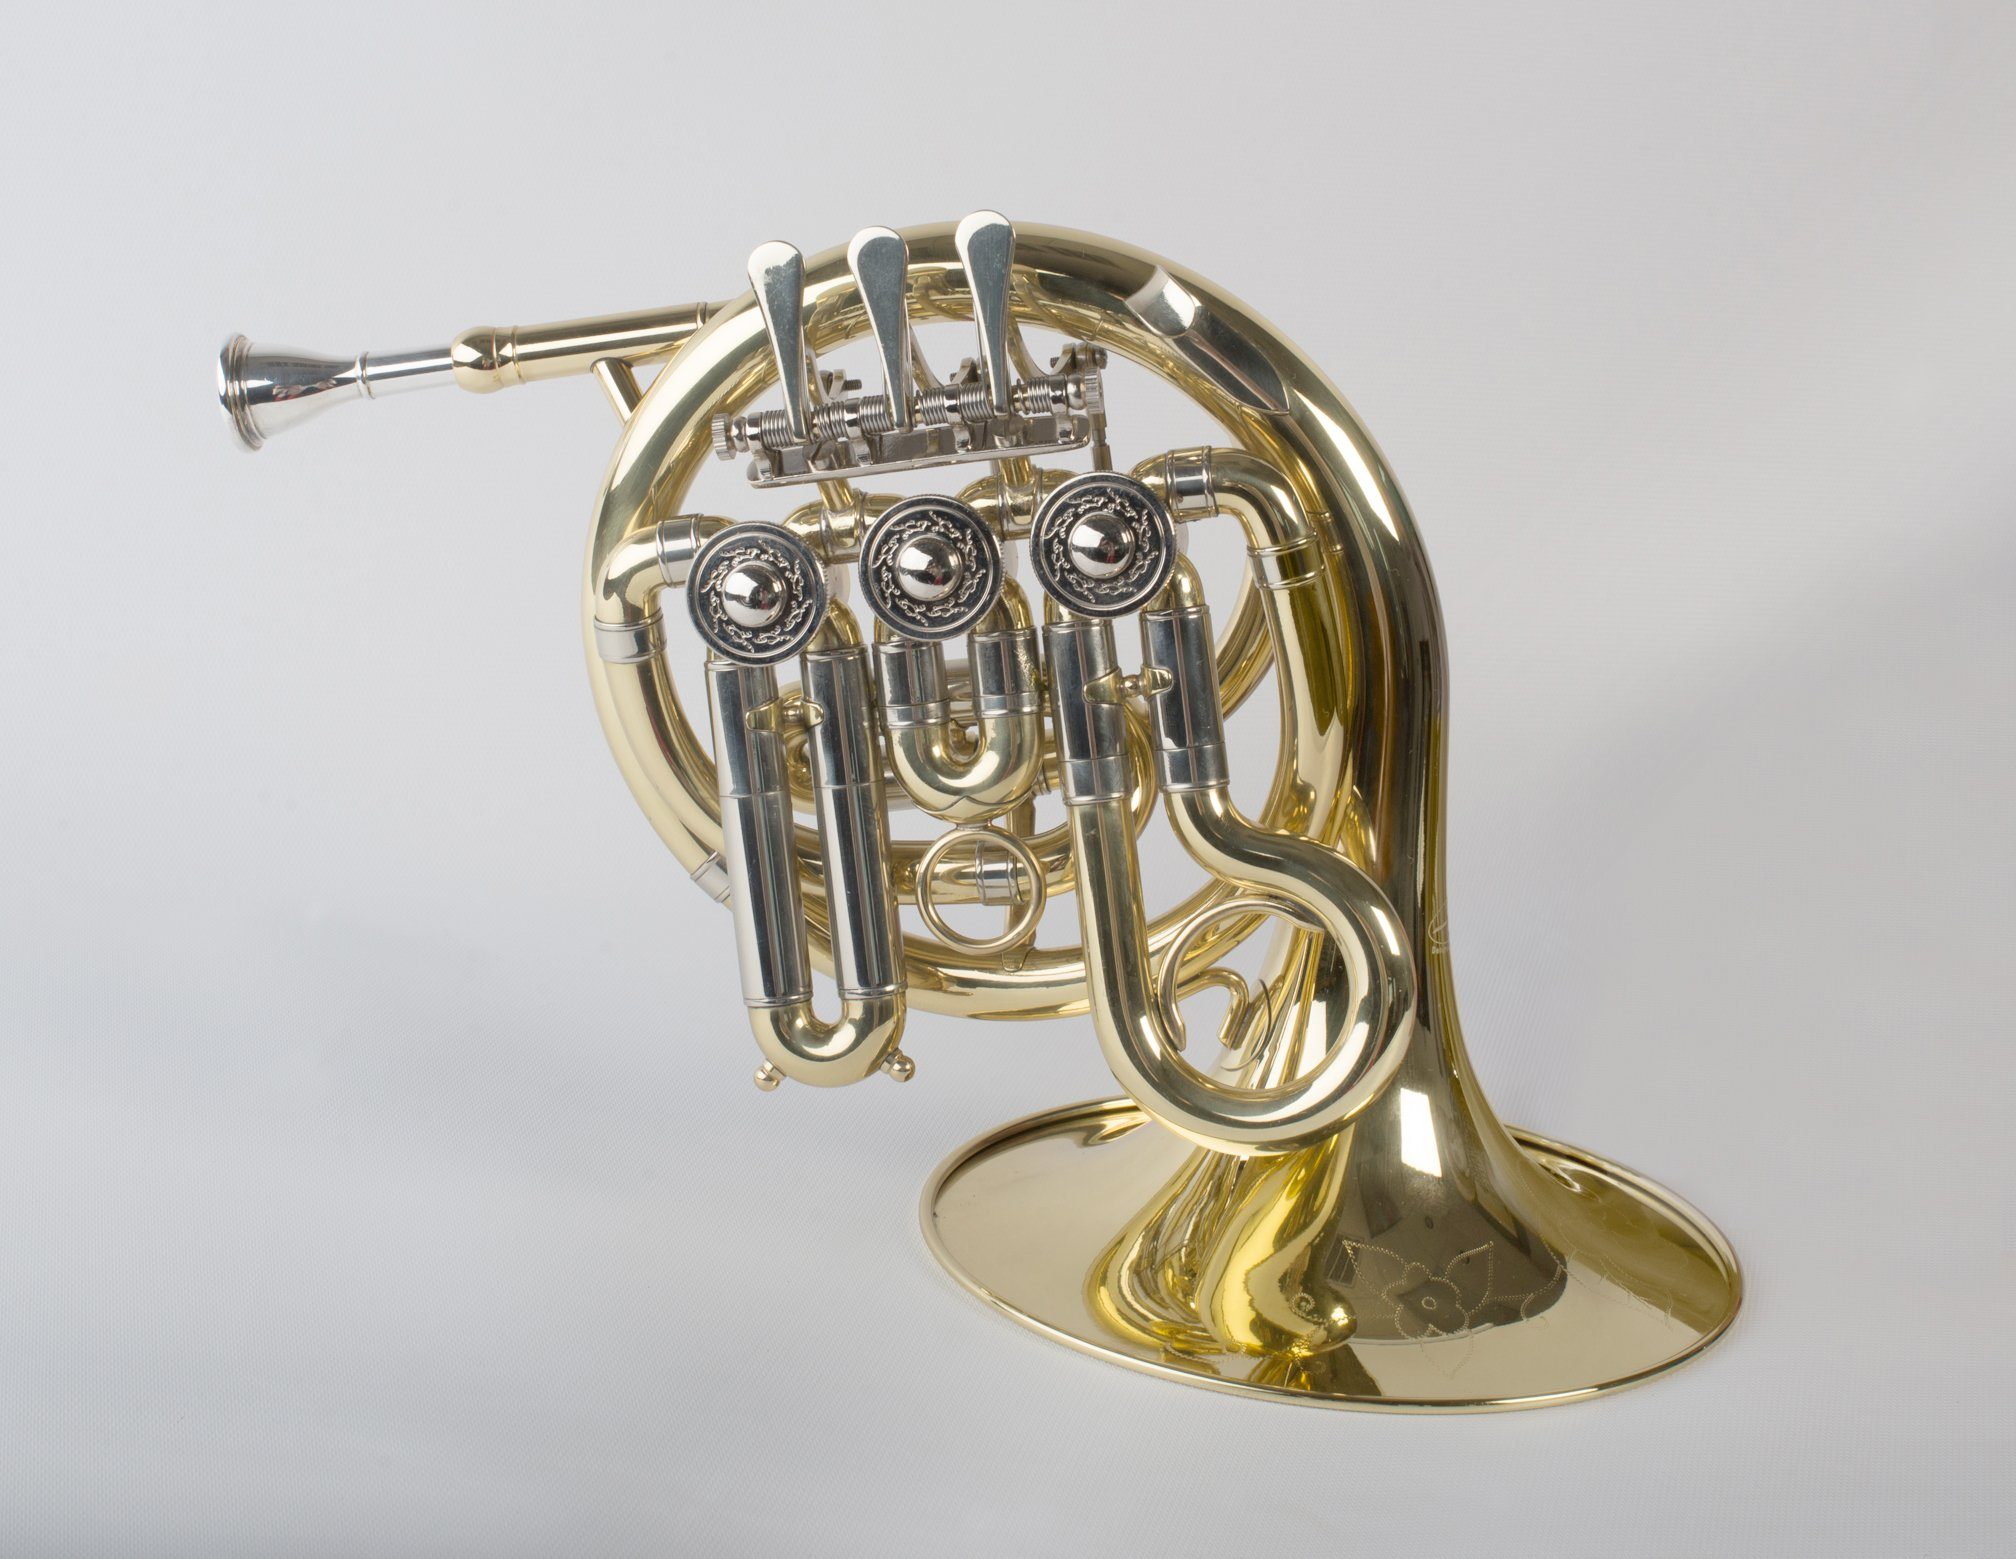 TEMPEST AGILITY WINDS MINI POCKET FRENCH HORN in Bb